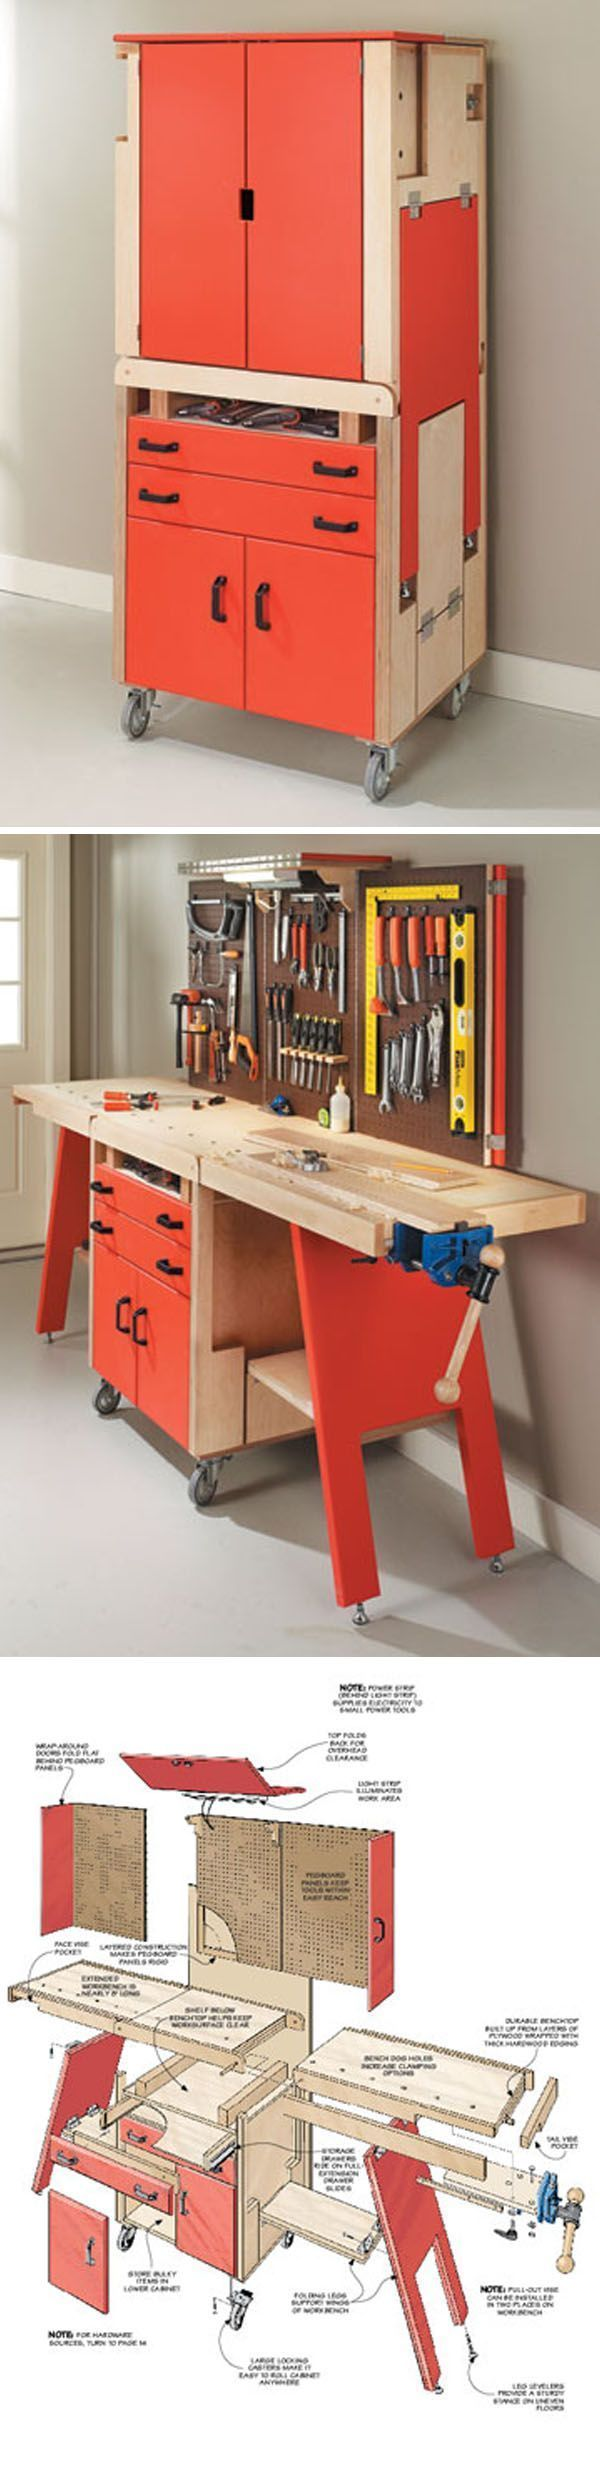 http://wood4fans.tumblr.com/ is a fantastic ressource with inspirational tips about woodworking.